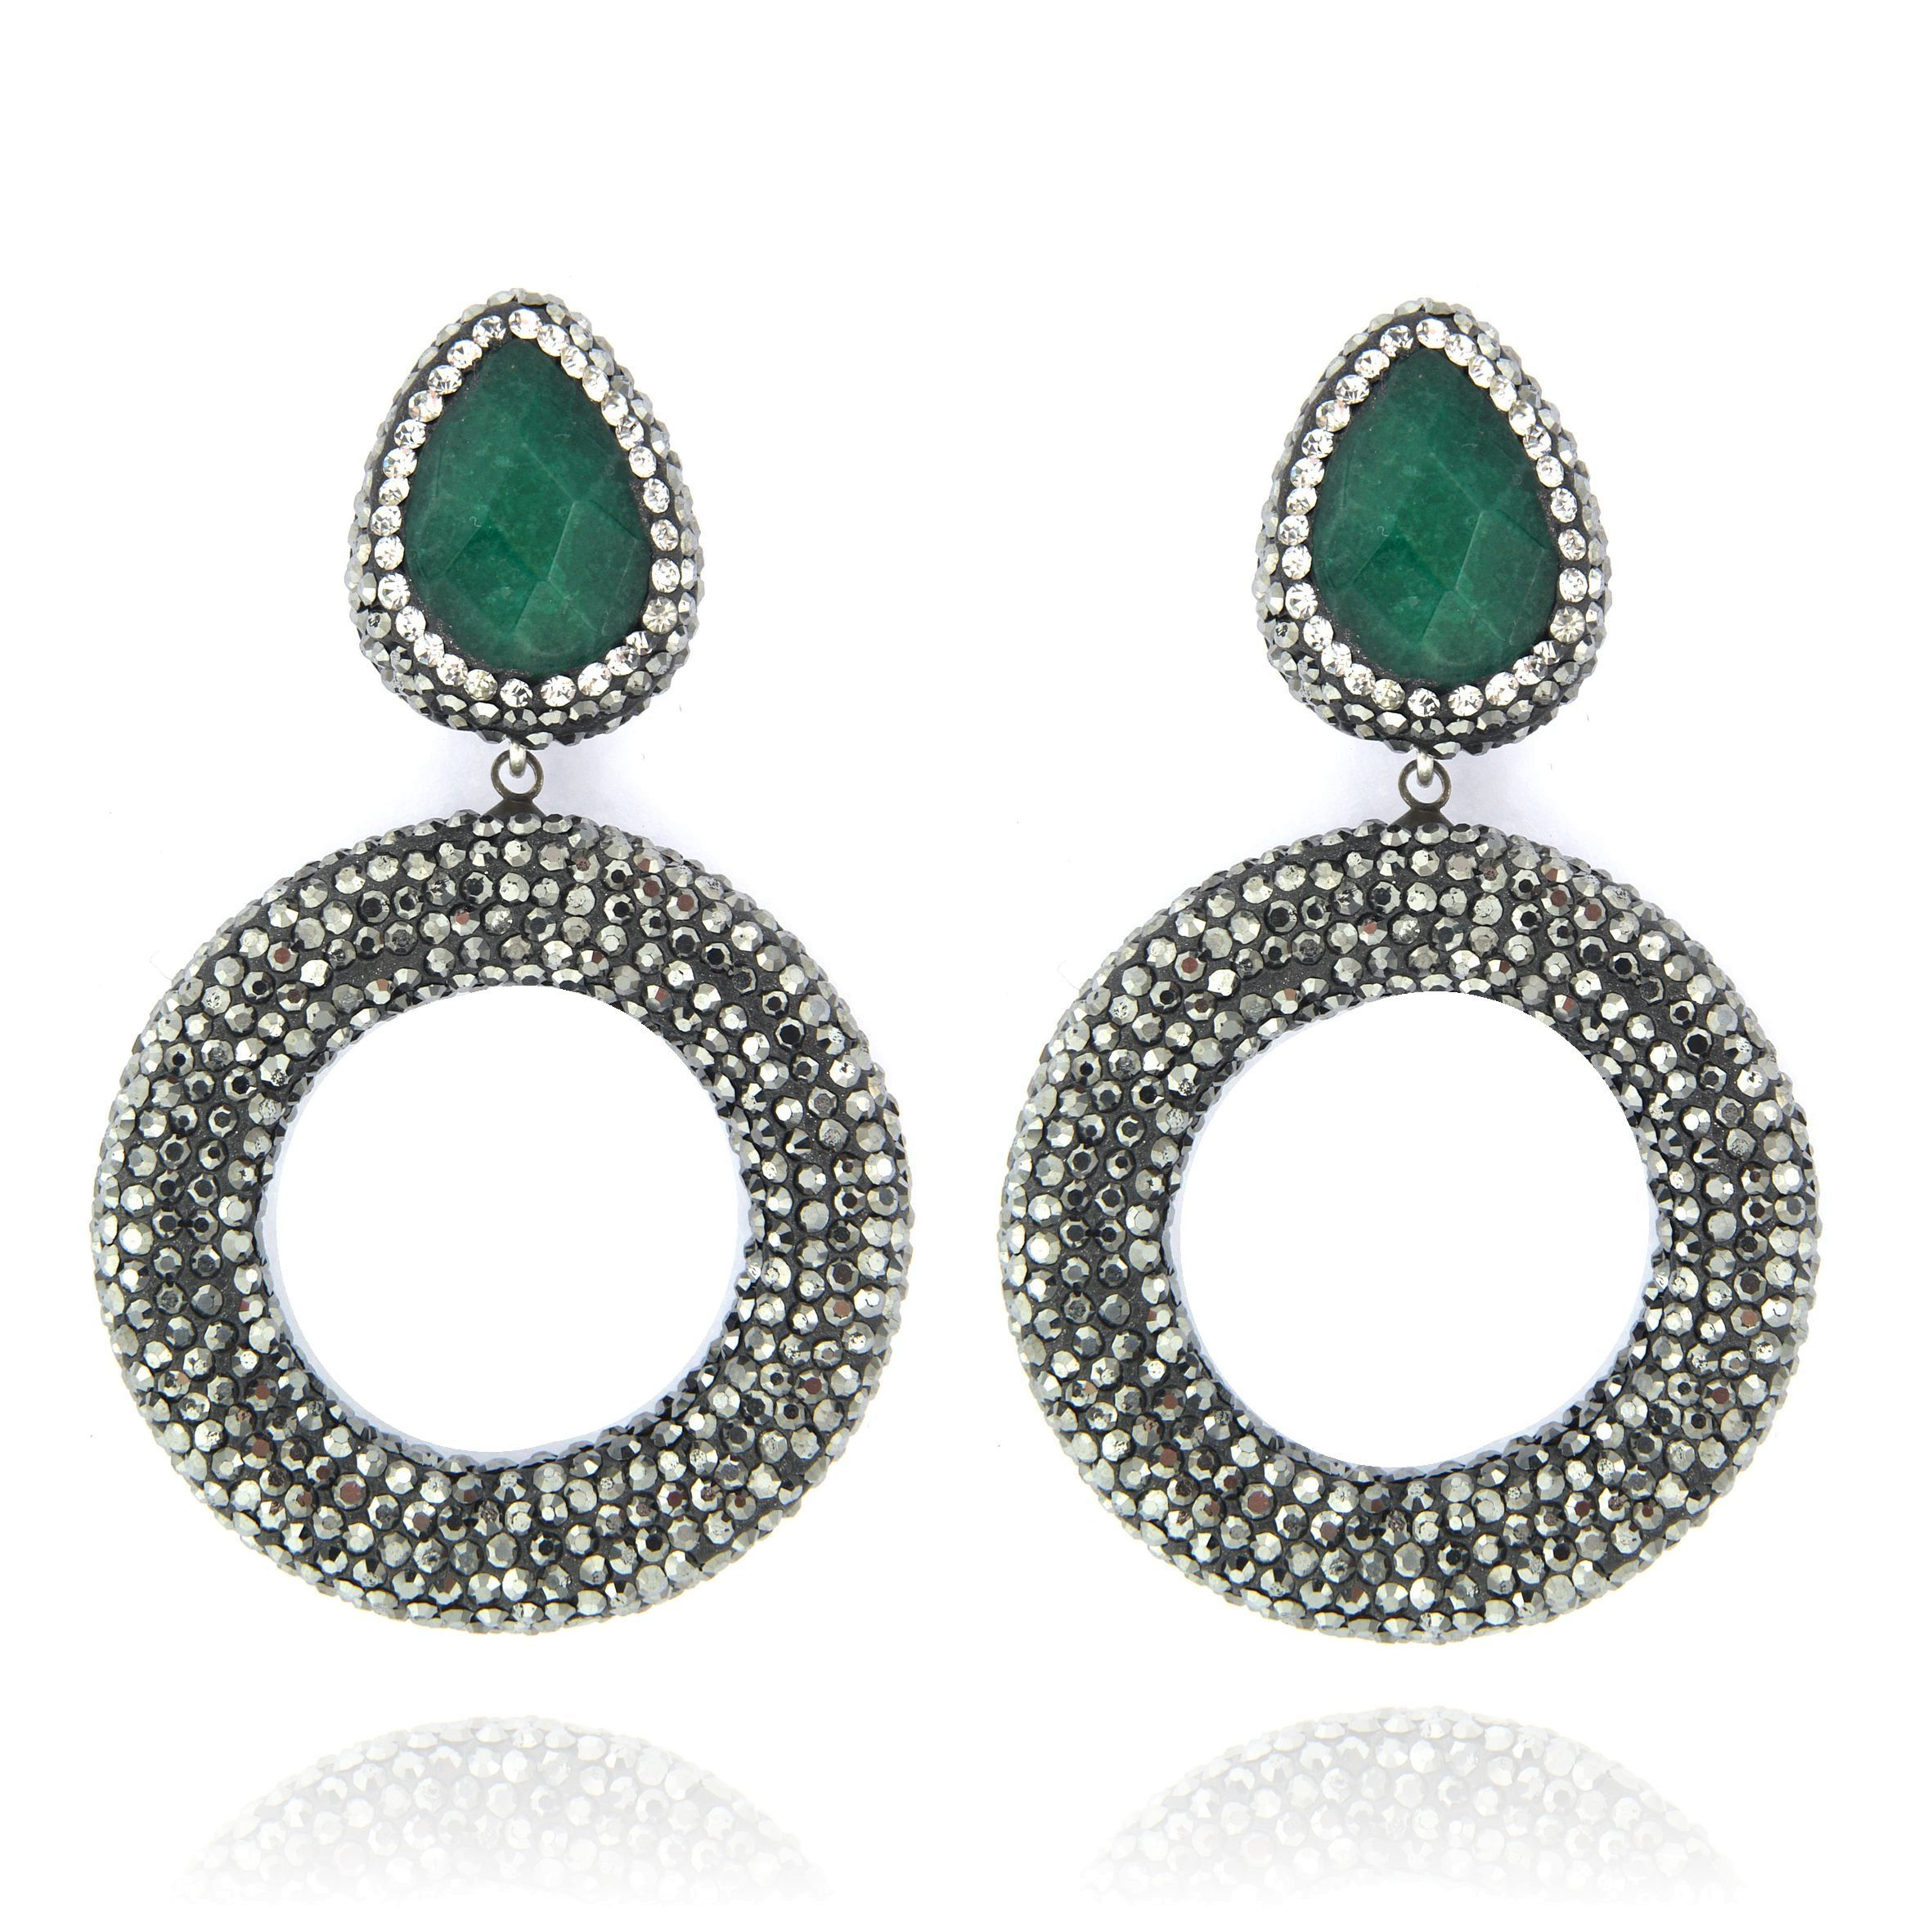 emerald earring aa jewellery products aynurabbott earrings com gg triple